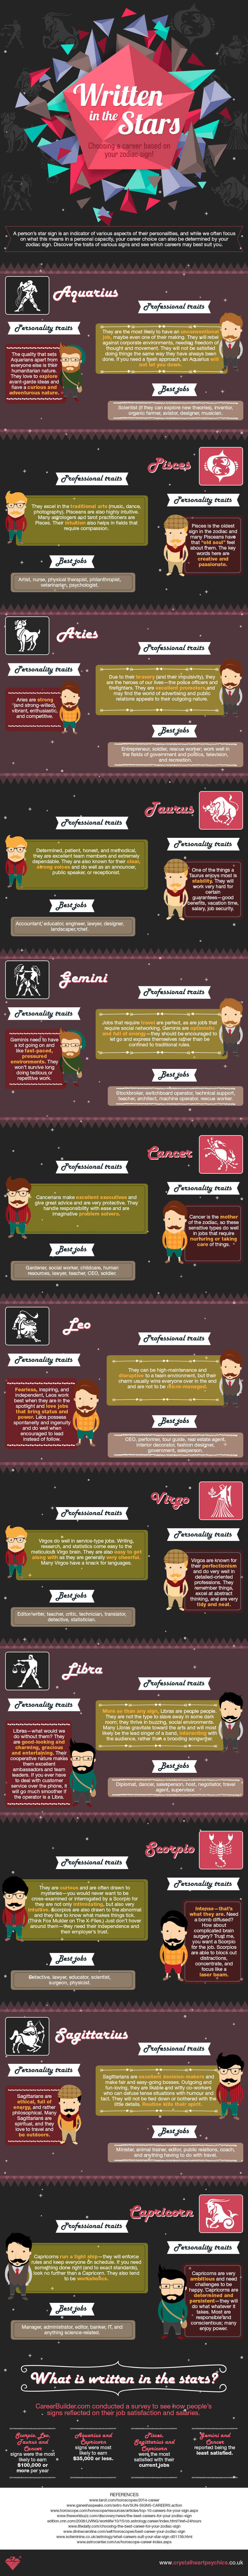 Infographic: Written in the stars: Choosing the best careers based on your zodiac sign